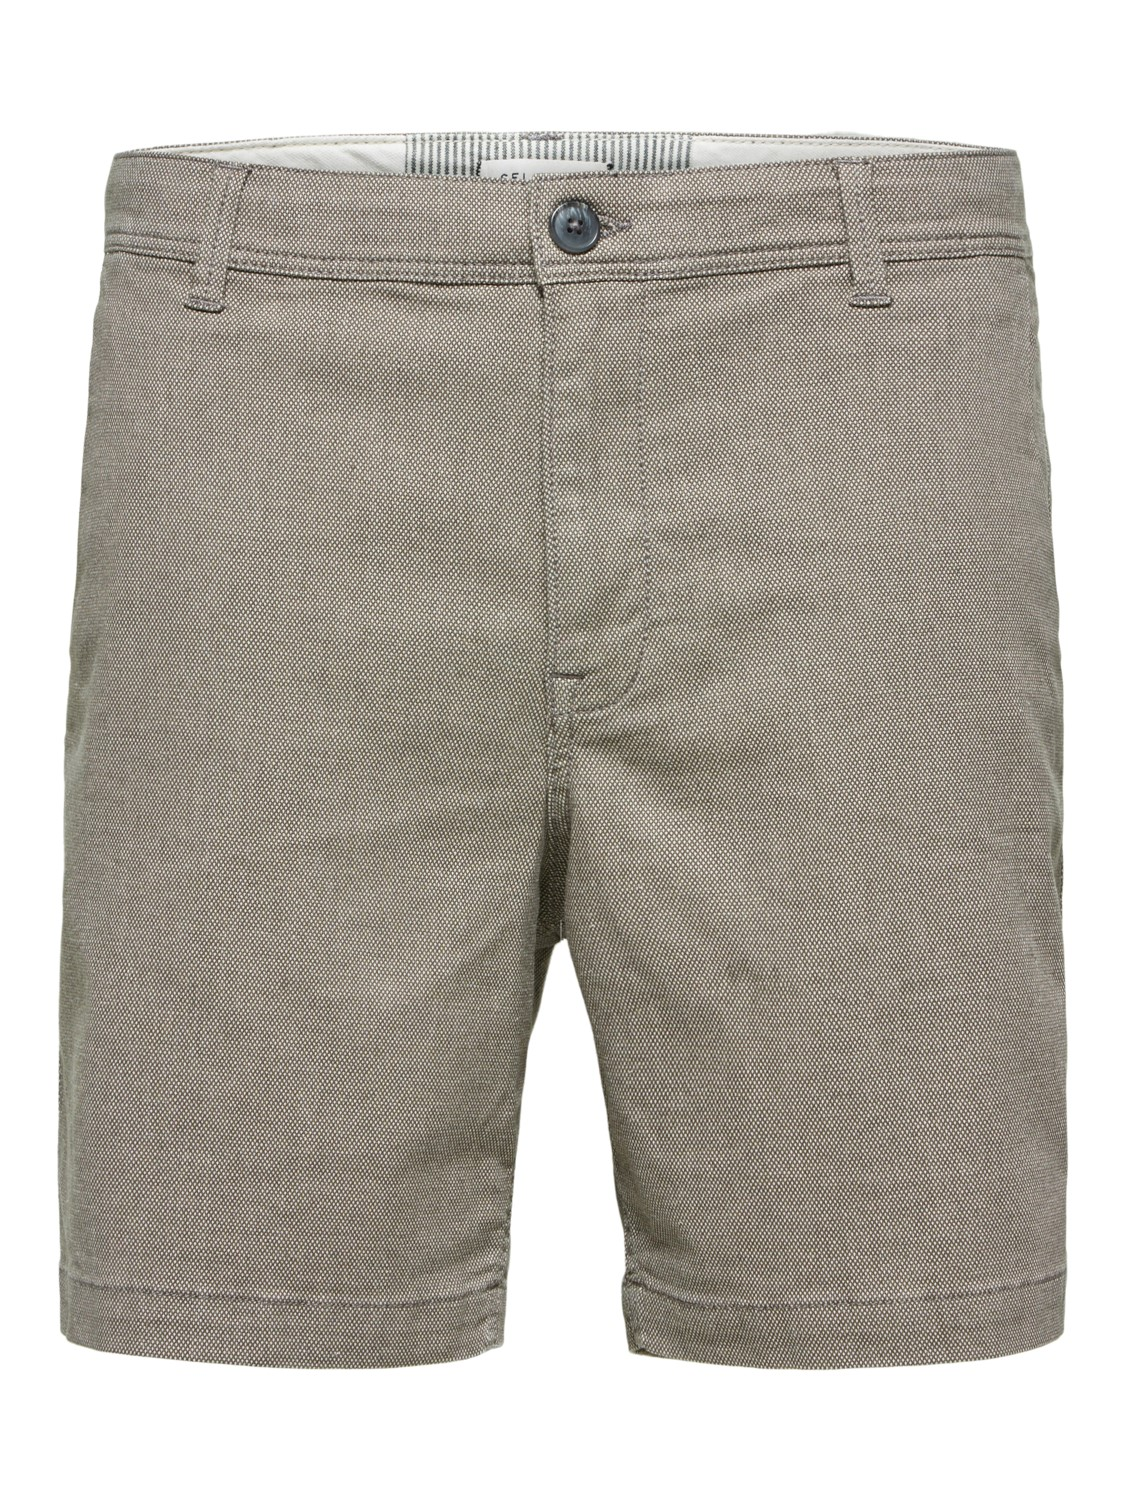 SELECTED SLHSTORM FLEX SHORTS Sand | GATE 36 Hobro